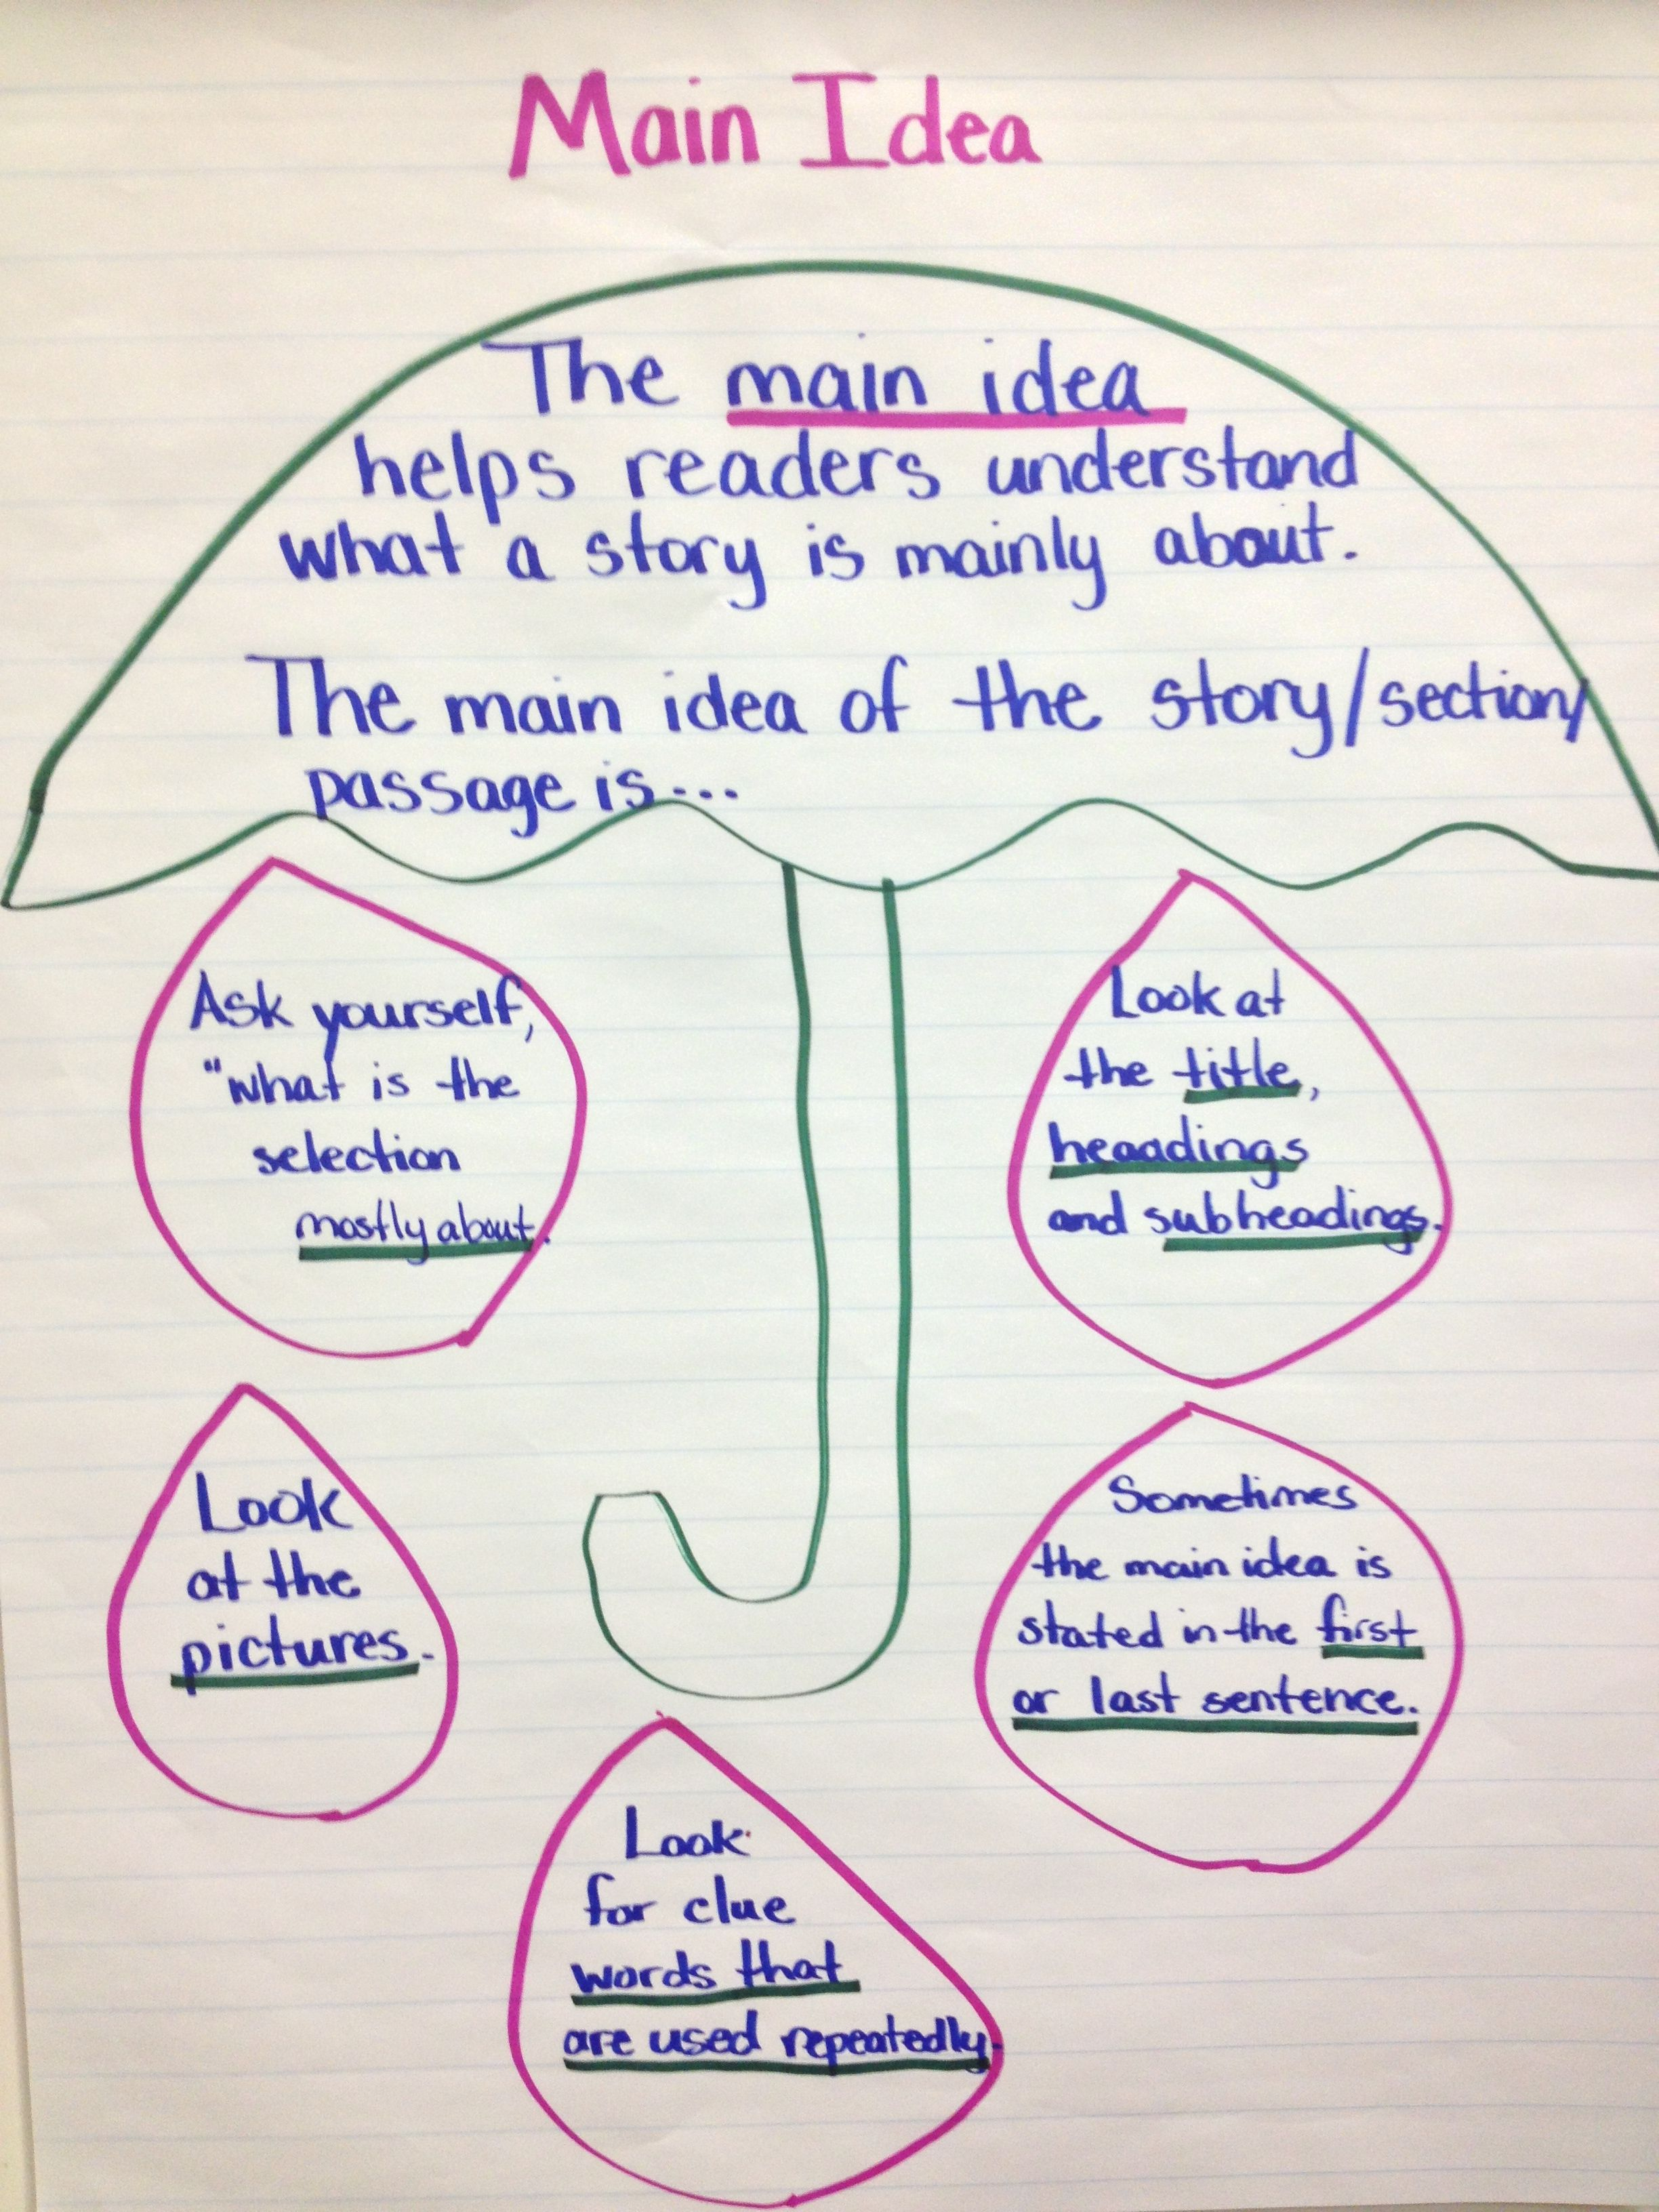 Main Idea Chart I Created For My Class Using The Umbrella